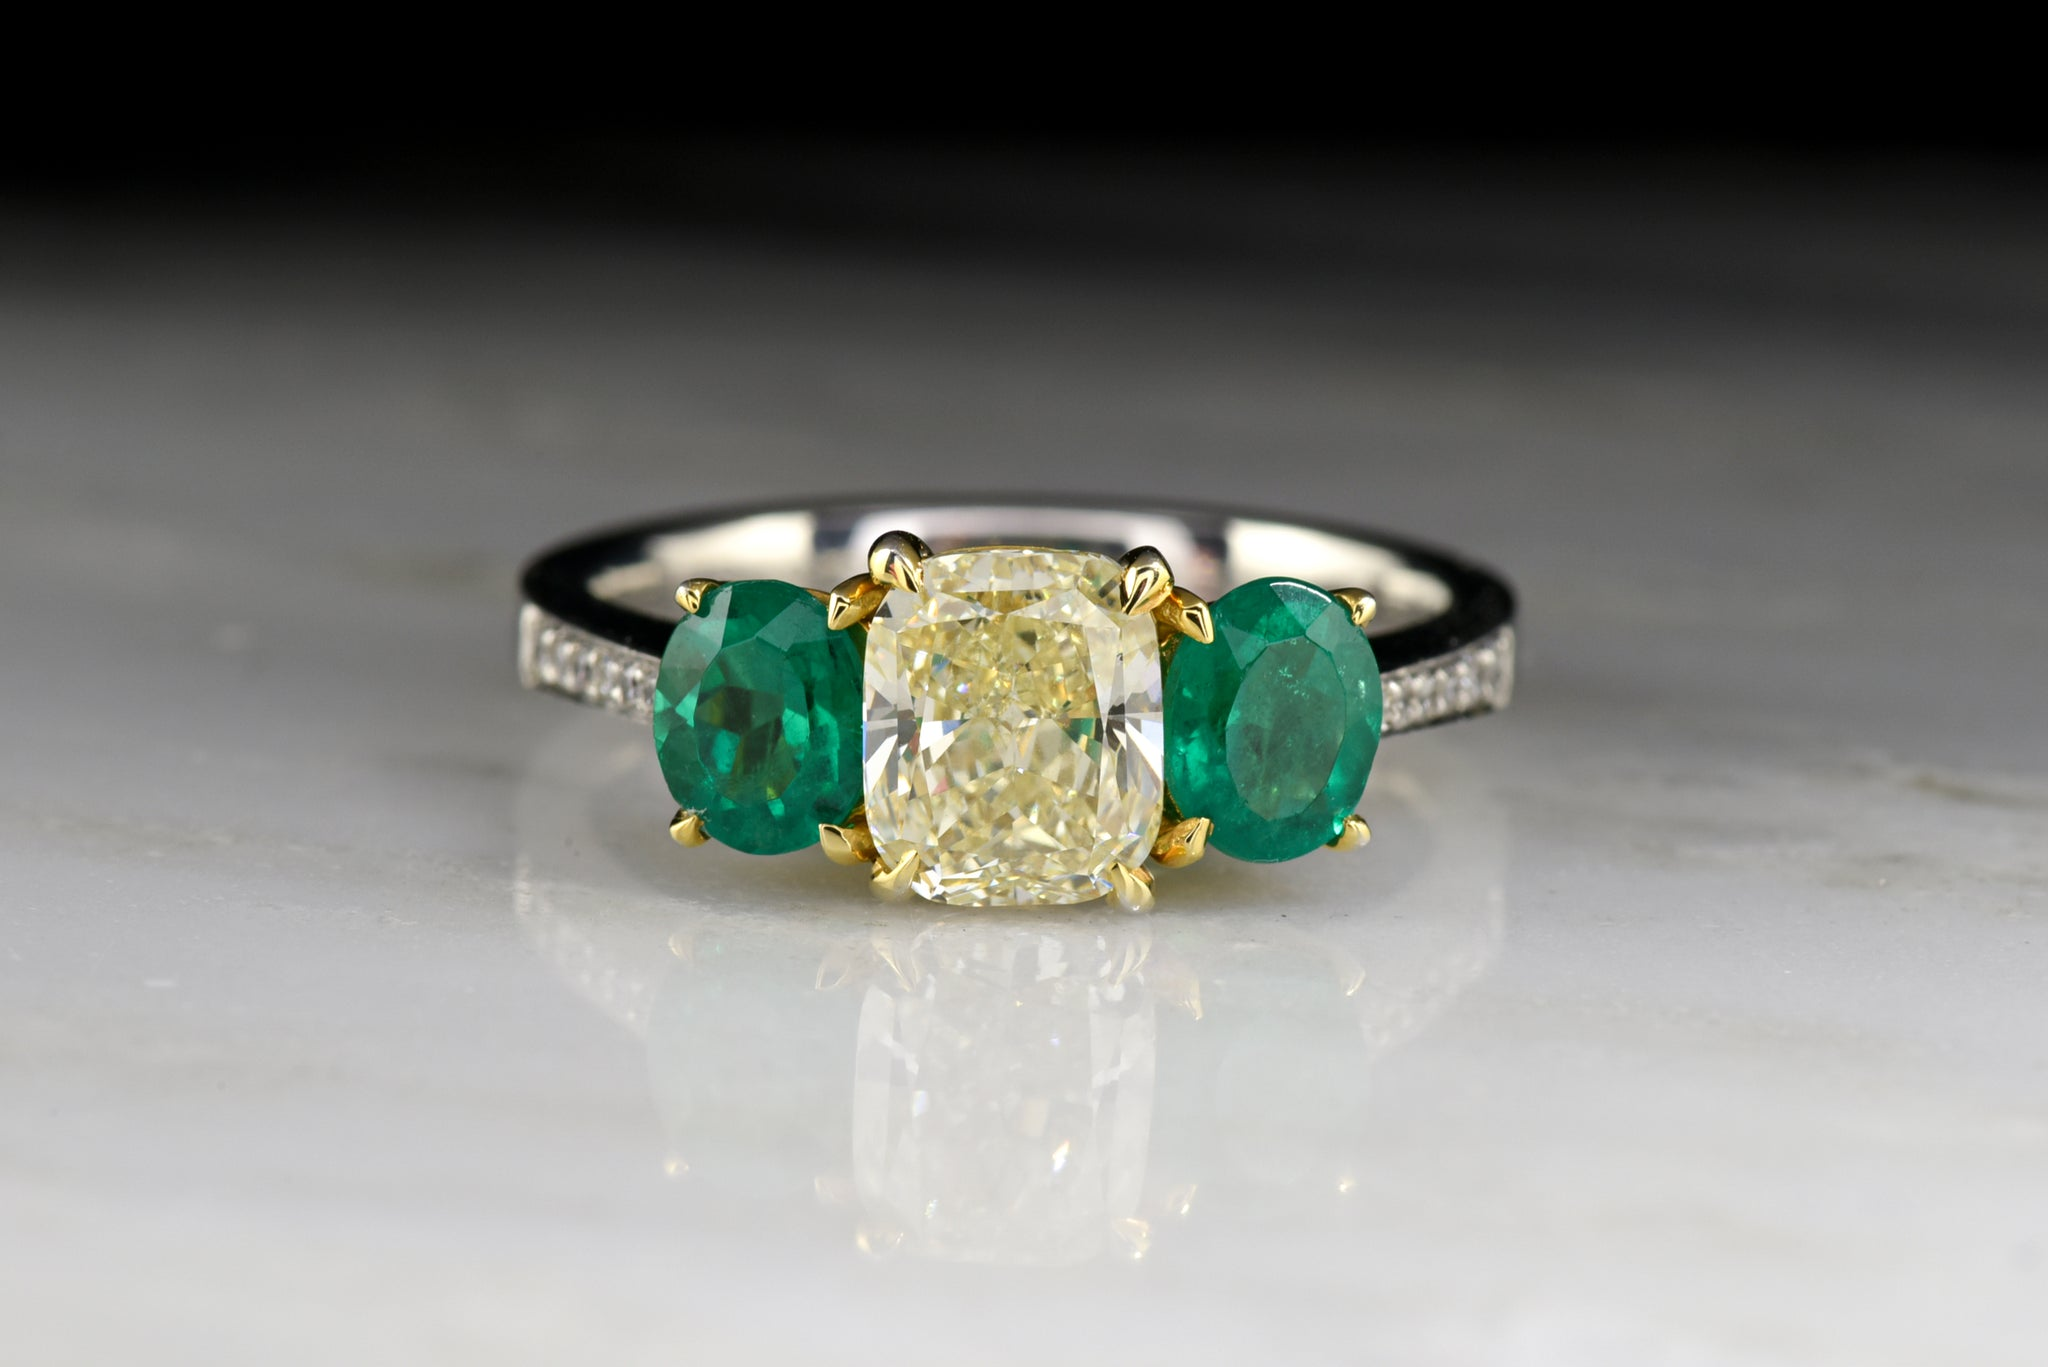 Vintage Henri Daussi Engagement Ring With 1 20 Carat Radiant Cushion Cut Light Yellow Diamond And Oval Cut Emeralds